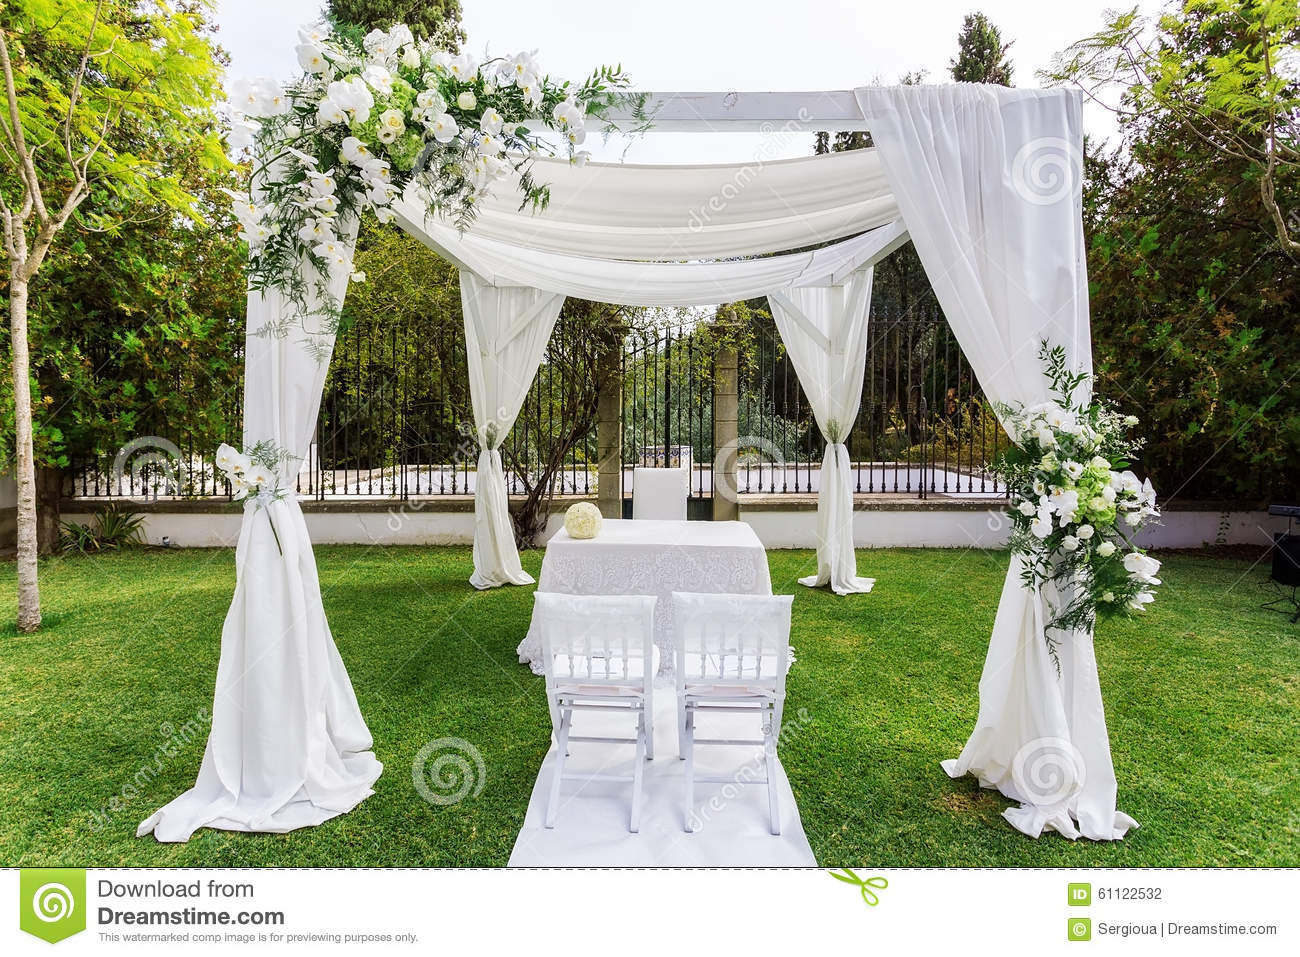 Silk tent for the wedding ceremony for the newlyweds the for Arreglos de mesa para boda en jardin